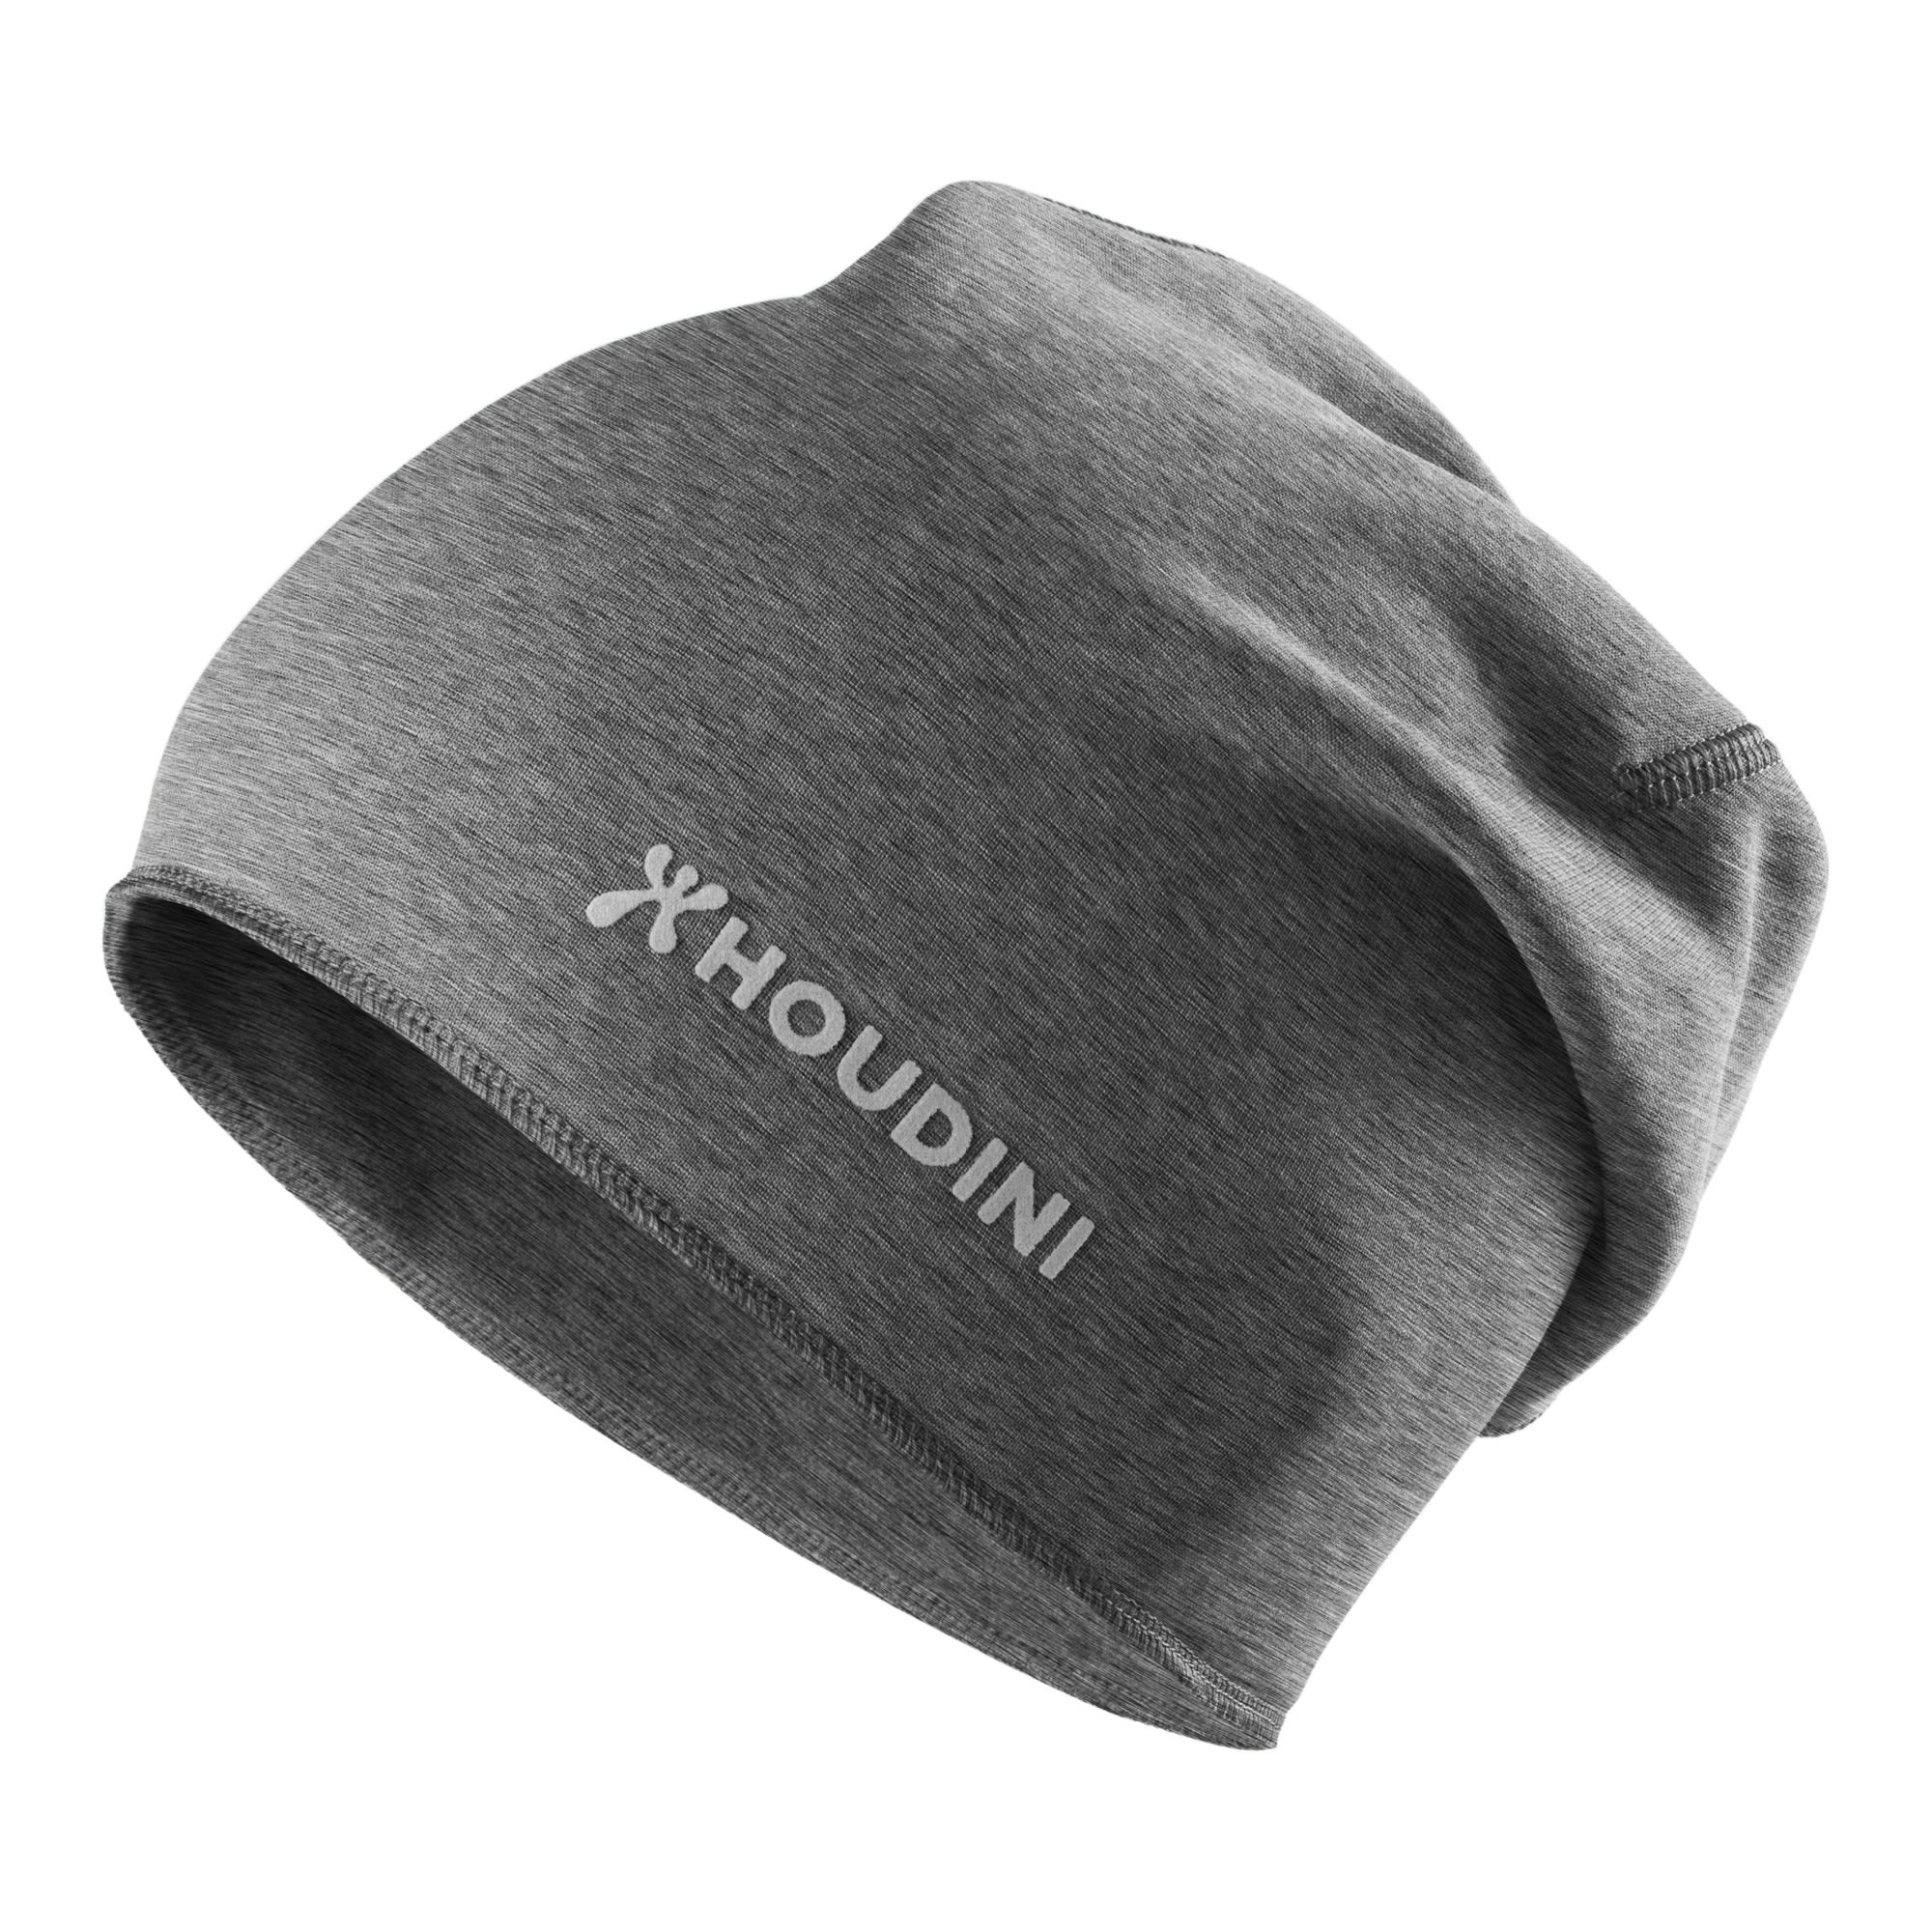 Houdini Toasty Top Hat Heather Grau, Polartec® Accessoires, L